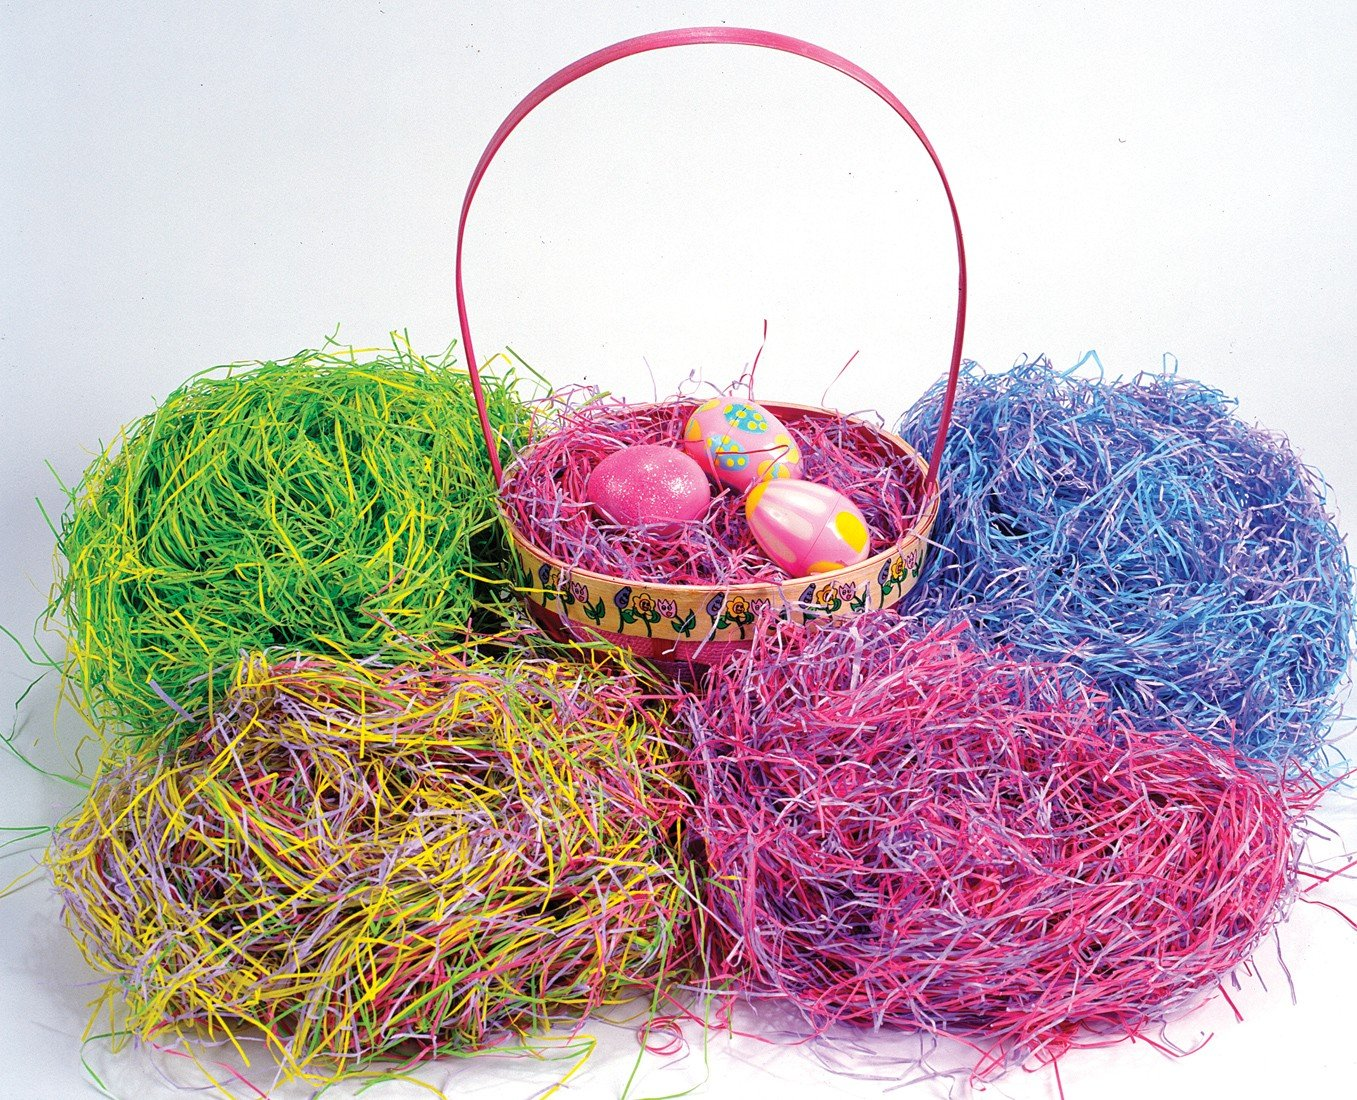 Amazon.com: Paper Easter Basket Grass - 100% Recycled Paper ...